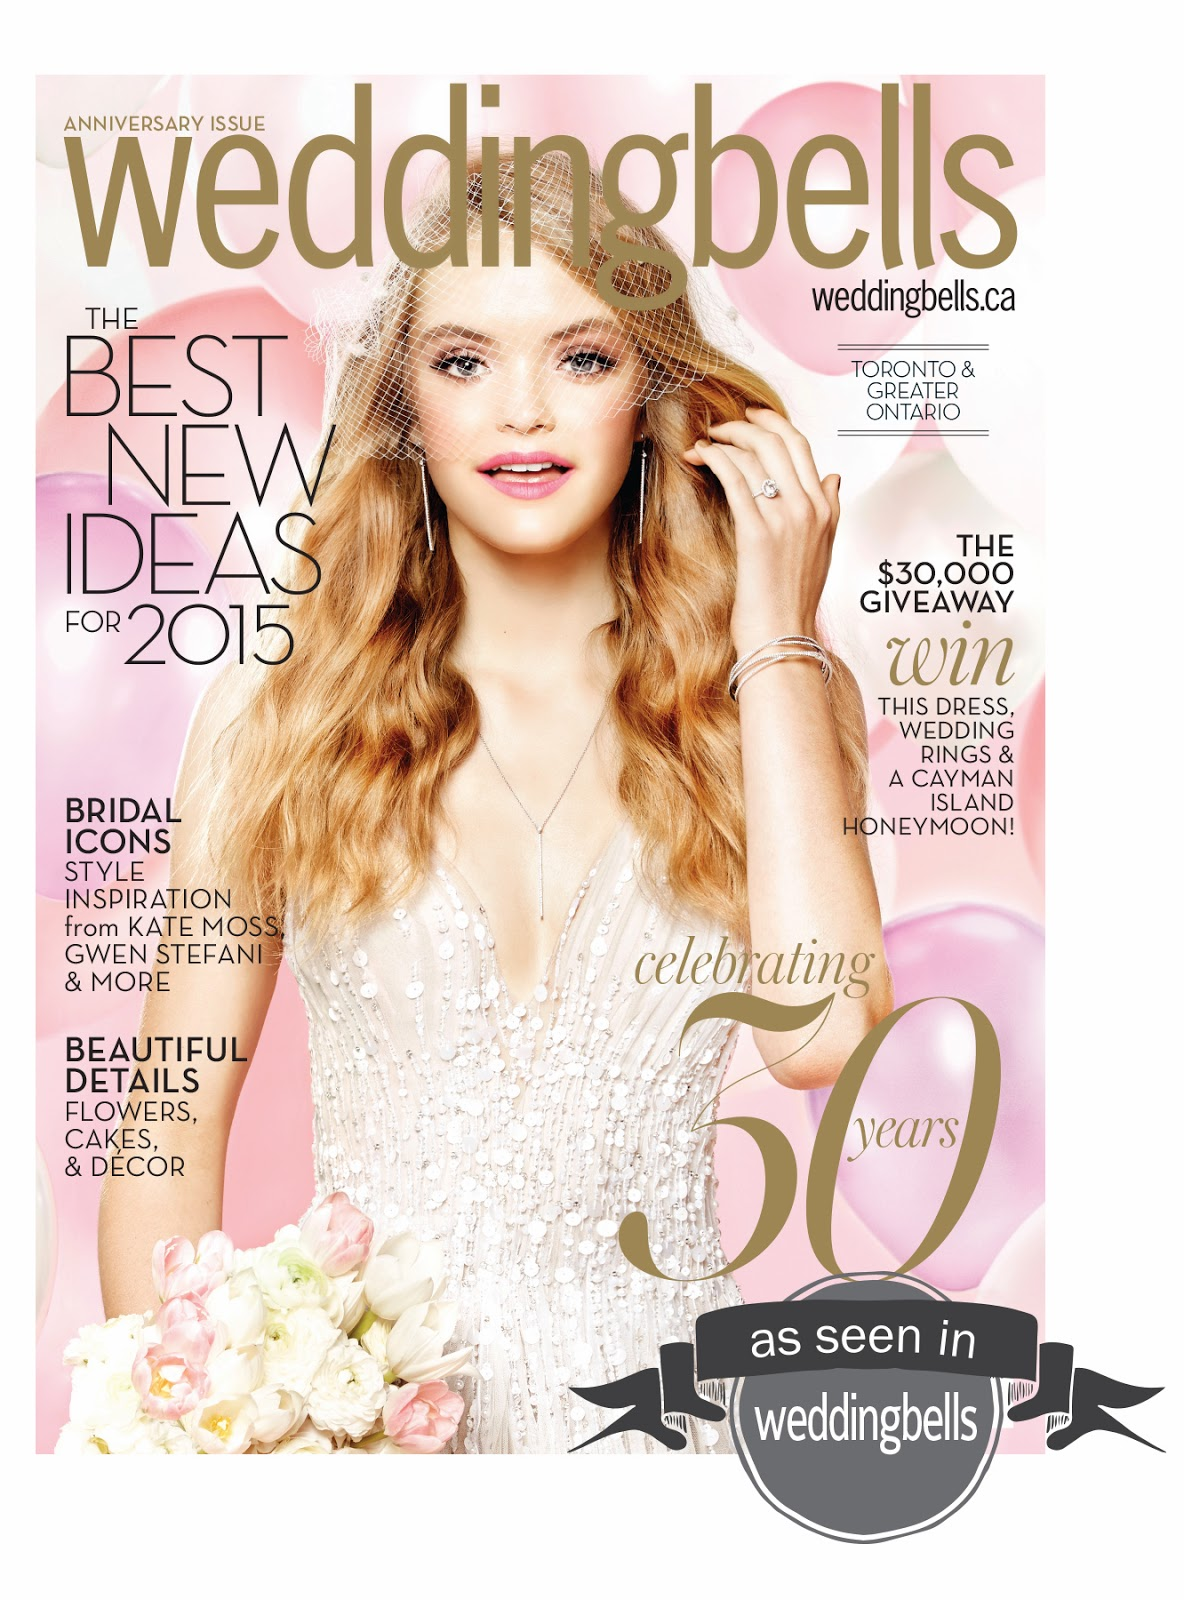 Creative Bag in the media - Weddingbells magazine